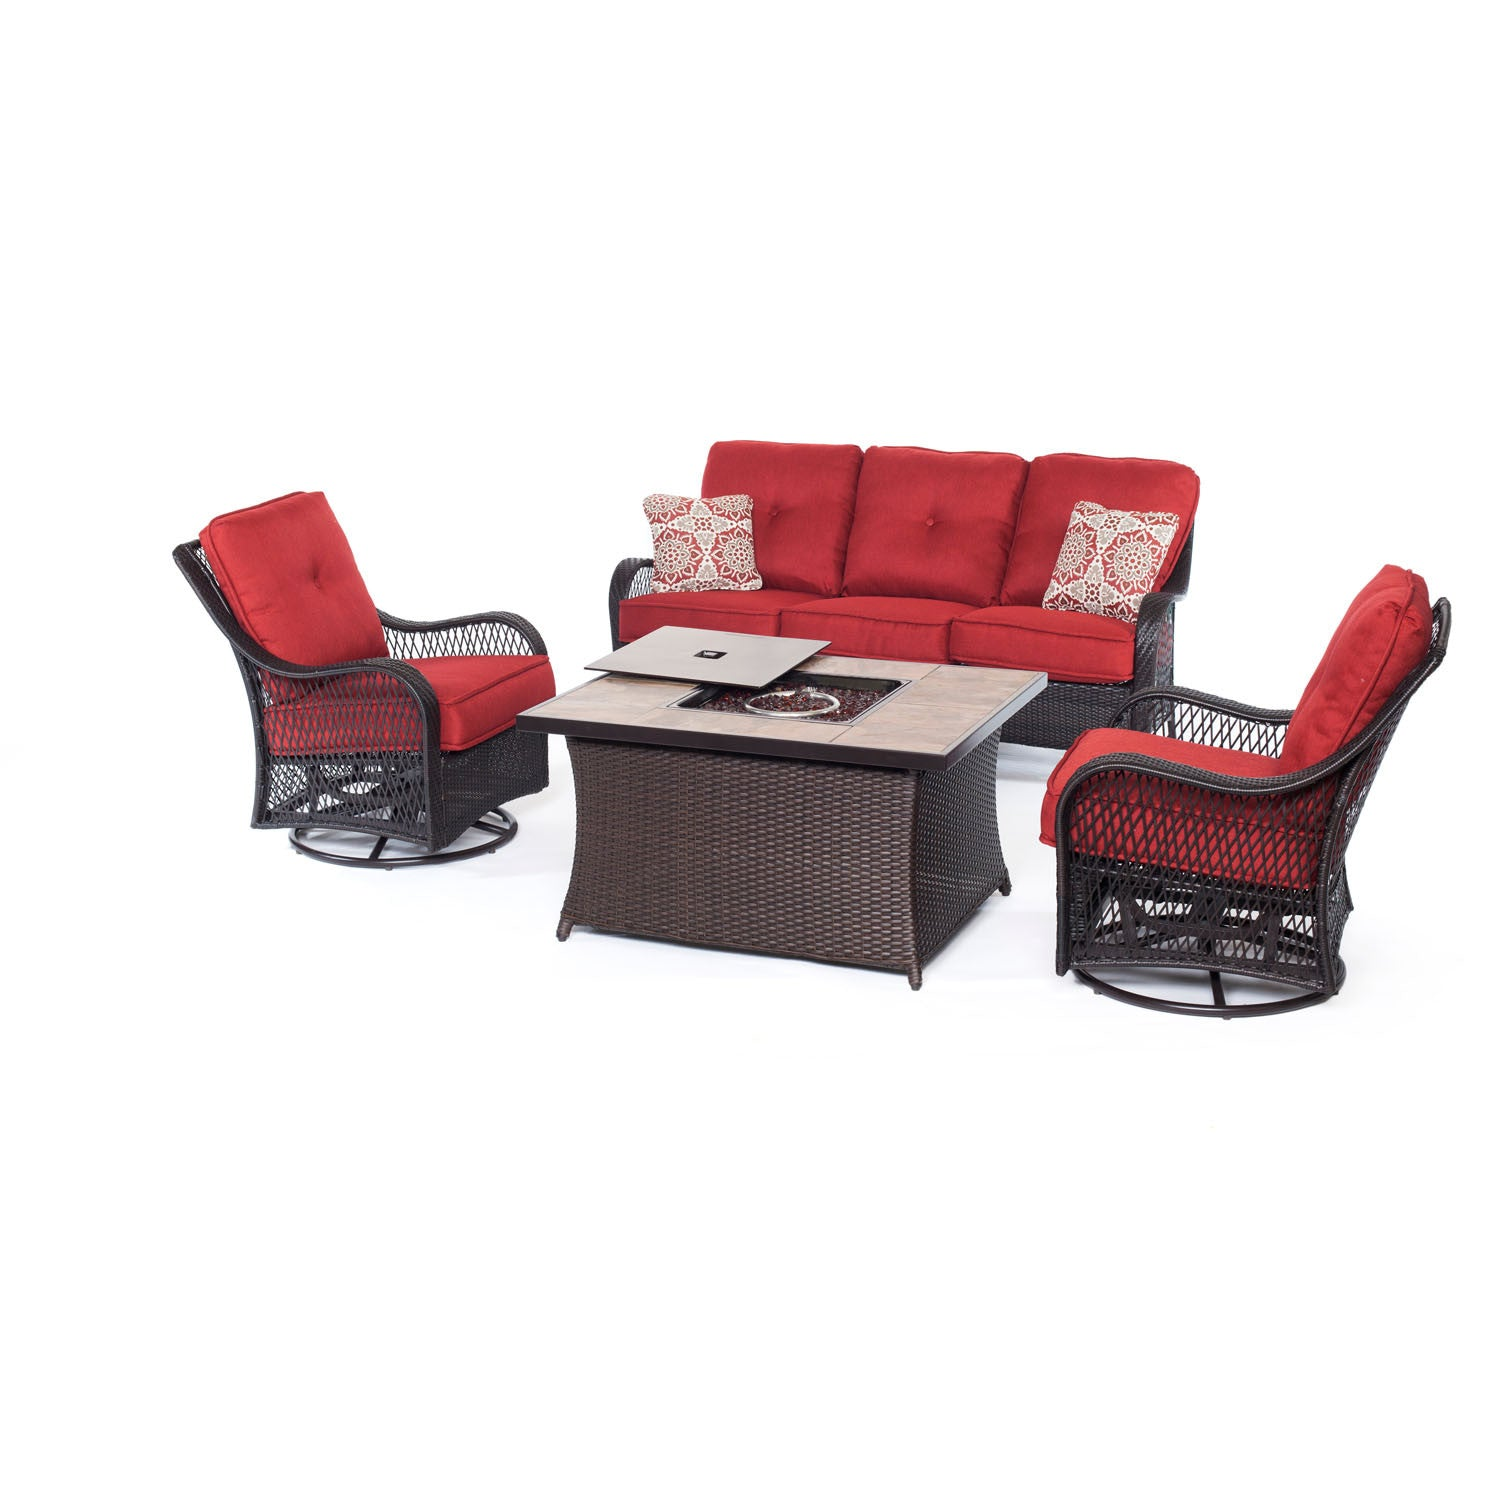 Orleans fp seating set 2 swivel gliders sofa fire pit coffee table bbqdeal com